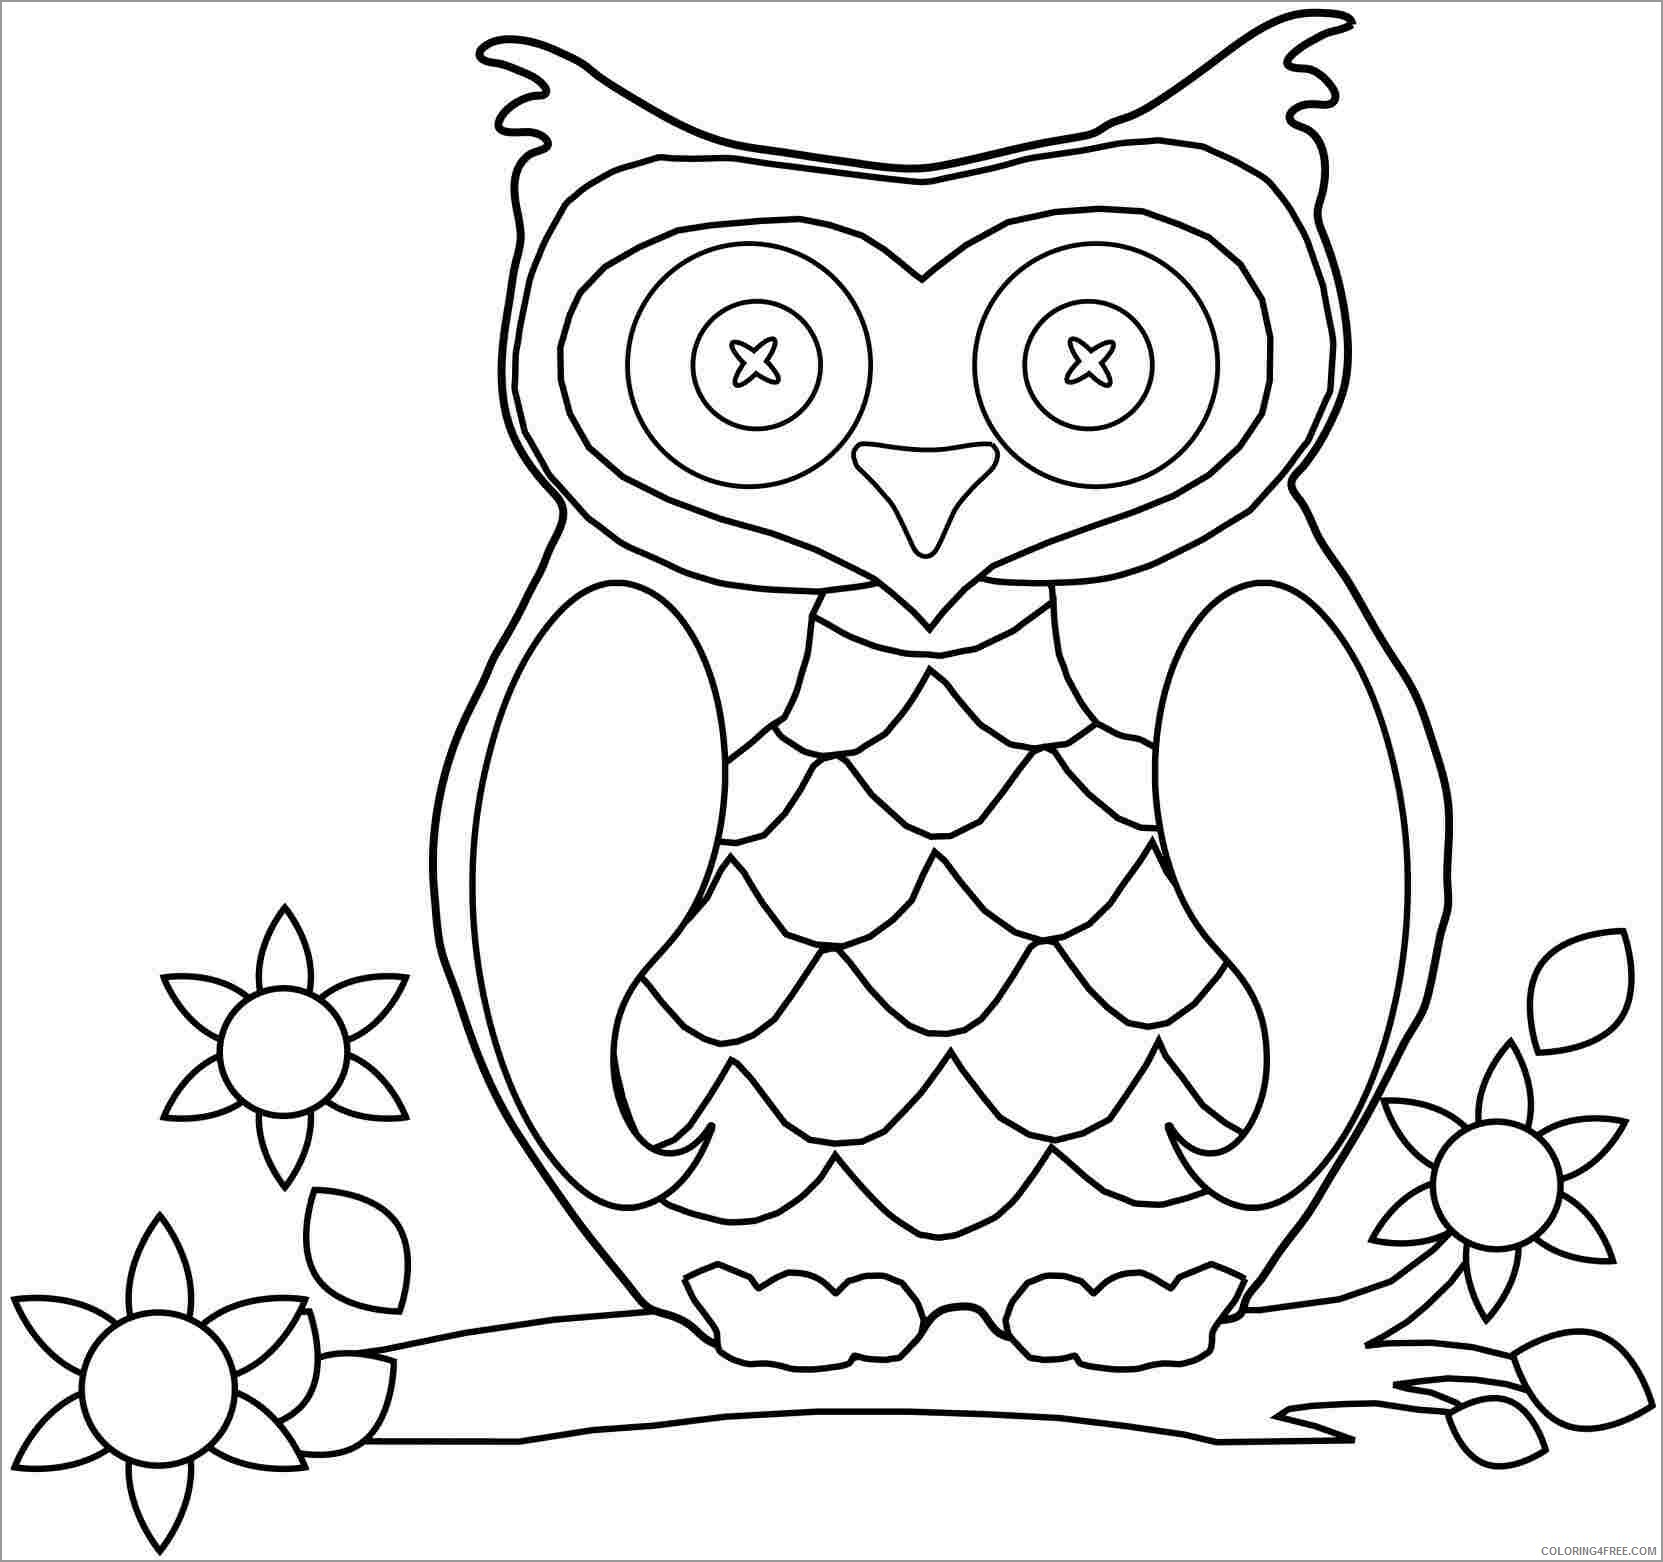 Owl Coloring Pages Animal Printable Sheets easy cute owl 2021 3626 Coloring4free